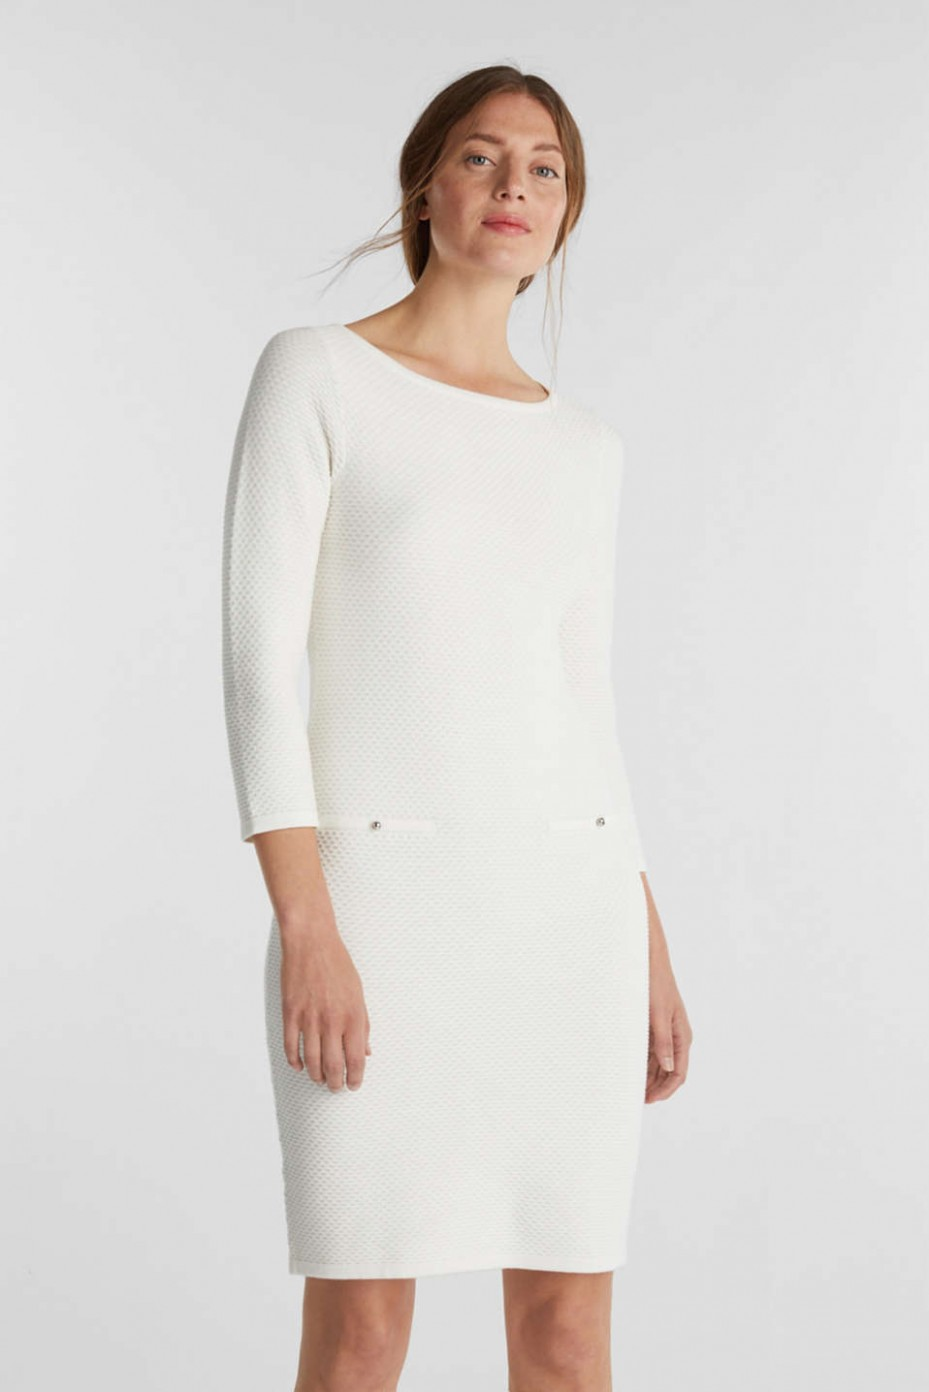 Esprit - Textured knitted dress with decorative buttons at our